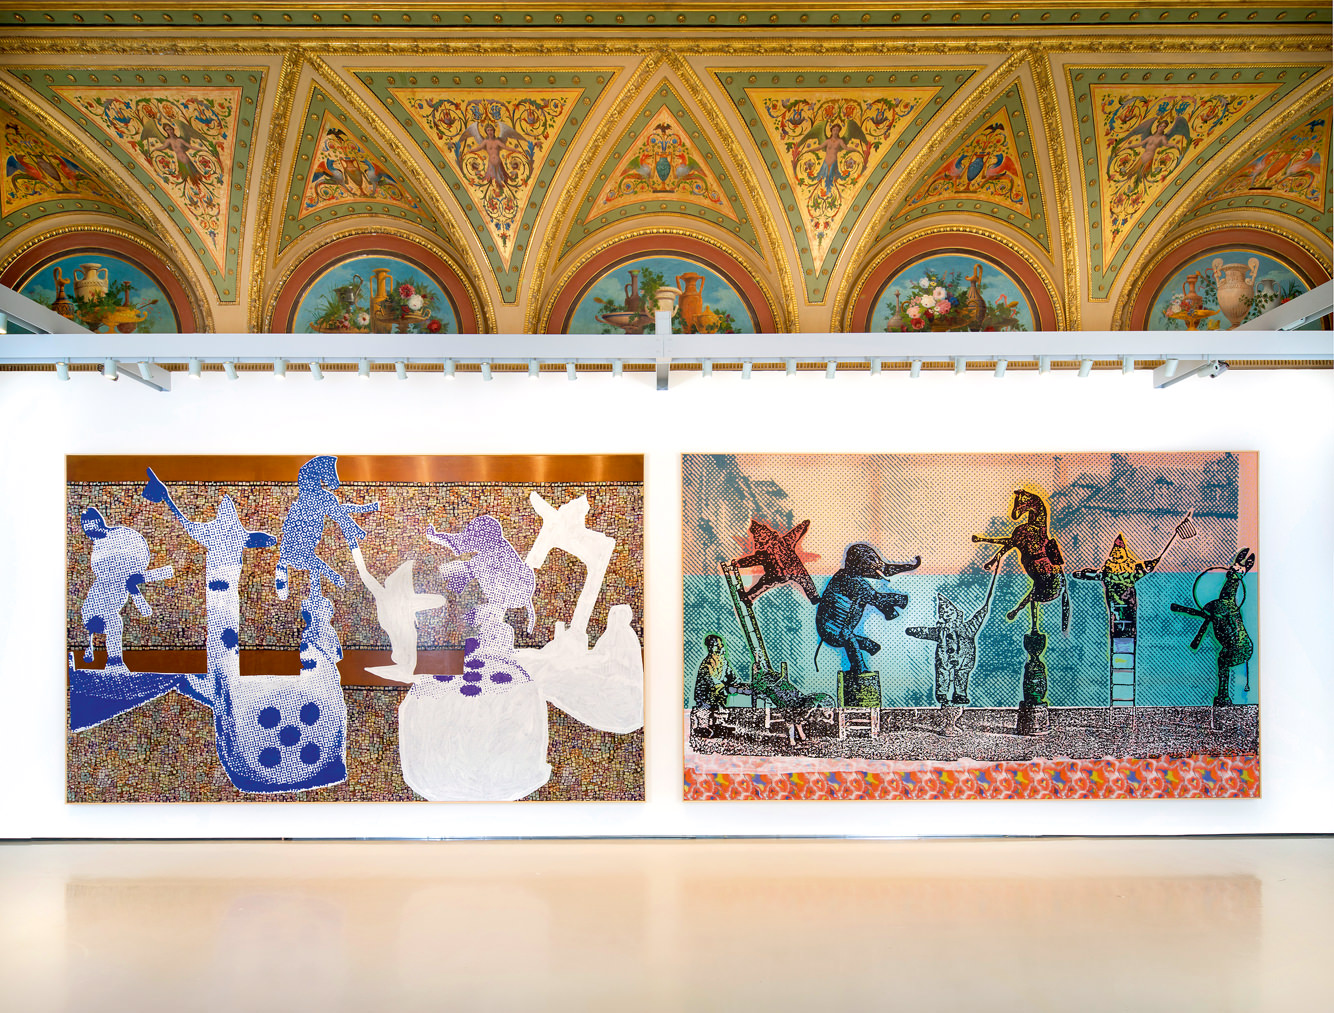 Die Trennung des Mondes von den einzelnen Planeten (2015) andZirkusfiguren (2005) by Sigmar Polke,Pinaultcollection, view of thePalazzo Grassi's installation. Photo: Matteo De Fina. The Estate of Sigmar Polke/SIAE 2016.   While we can recognise a great artist by their audacity and irreverence (towards their art, through their ability to test limits, towards themselves and their dexterity at never repeating themselves), their ability to speak about our era is just as important. And at this Polke excelled. Very early on he became interested in comics and Hollywood magazines. But his sources were numerous and his culture nothing short of encyclopaedic. With every possible irony he attacked these images that invaded the mass media. He questioned their value and meaning. He embraced current affairs, often hijacking them. His Without Title (Repose before the Flight into Egypt) uses this biblical theme to broach the delicate question of refugees. Who are the current children of Israel fleeing to Egypt? Are we any more humane with them today? Through this exhibition conceived by Guy Tosatto and Elena Geuna for the Pinault collection, through his spiritual and sacred spheres and mastery as an alchemist, Polke delivers his definition of art. It's an invitation to dream and to reflect on the world. A magical place of permanent metamorphosis.   Sigmar Polke, at thePalazzo Grassi,Venise, until November 6th2016.   By Thibaut Wychowanok